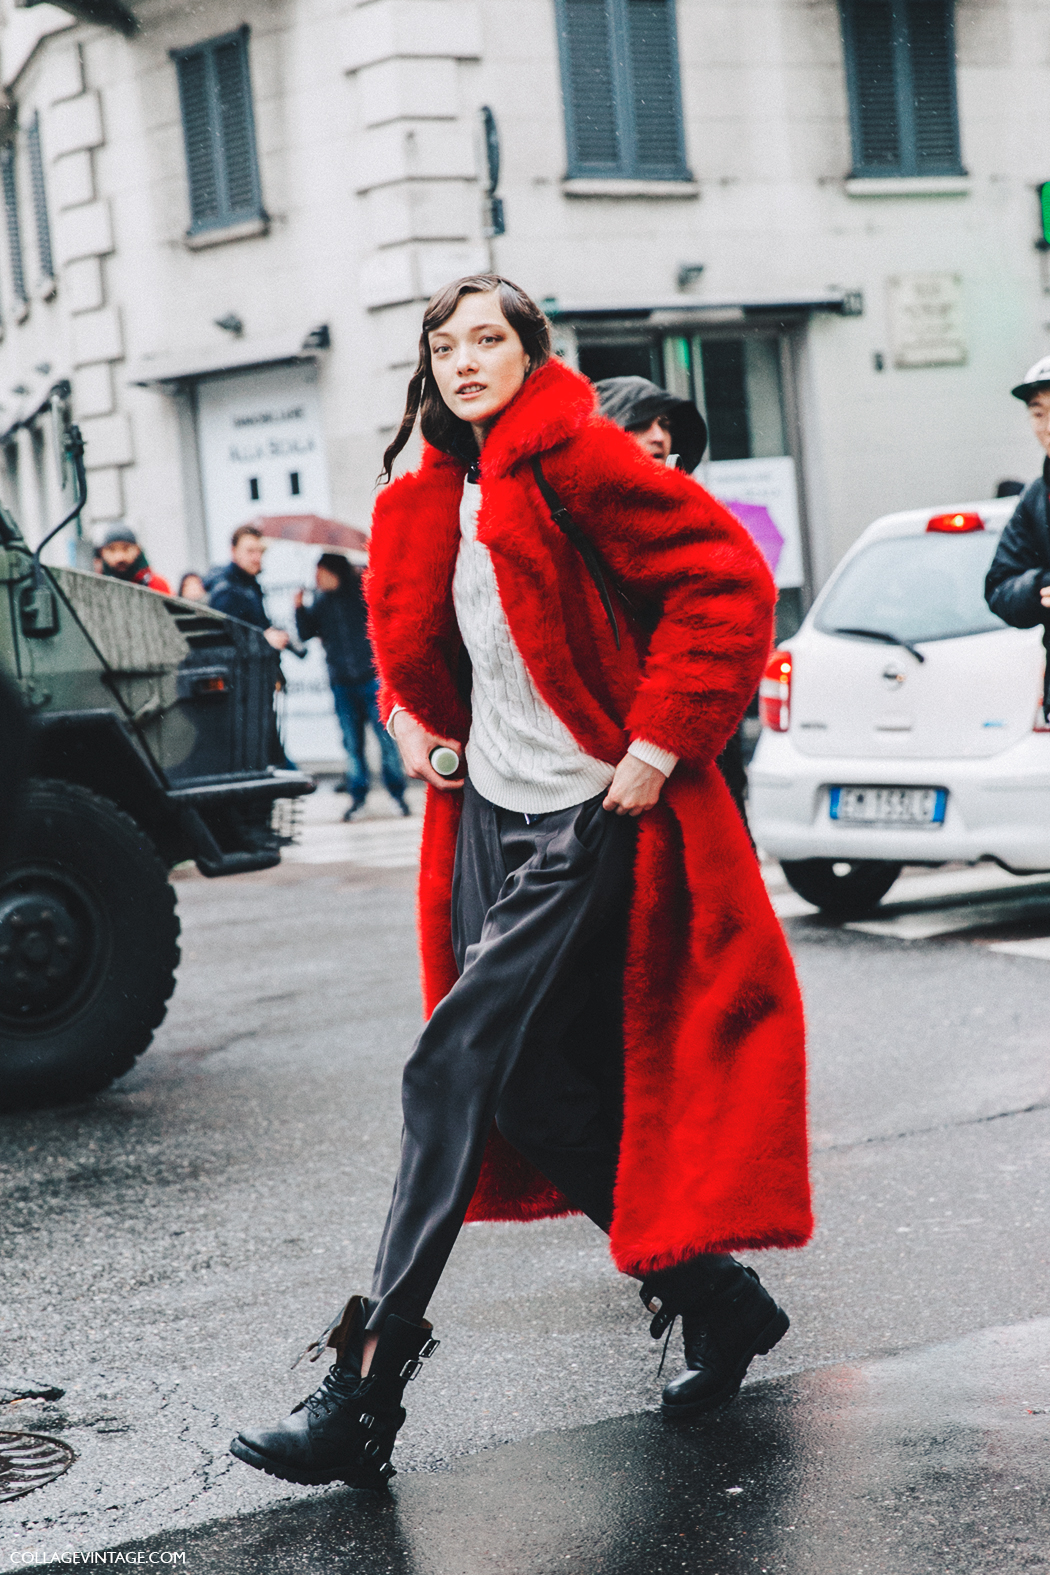 Milan_Fashion_Week_Fall_16-MFW-Street_Style-Collage_Vintage-Red_Fur_Coat-Model-